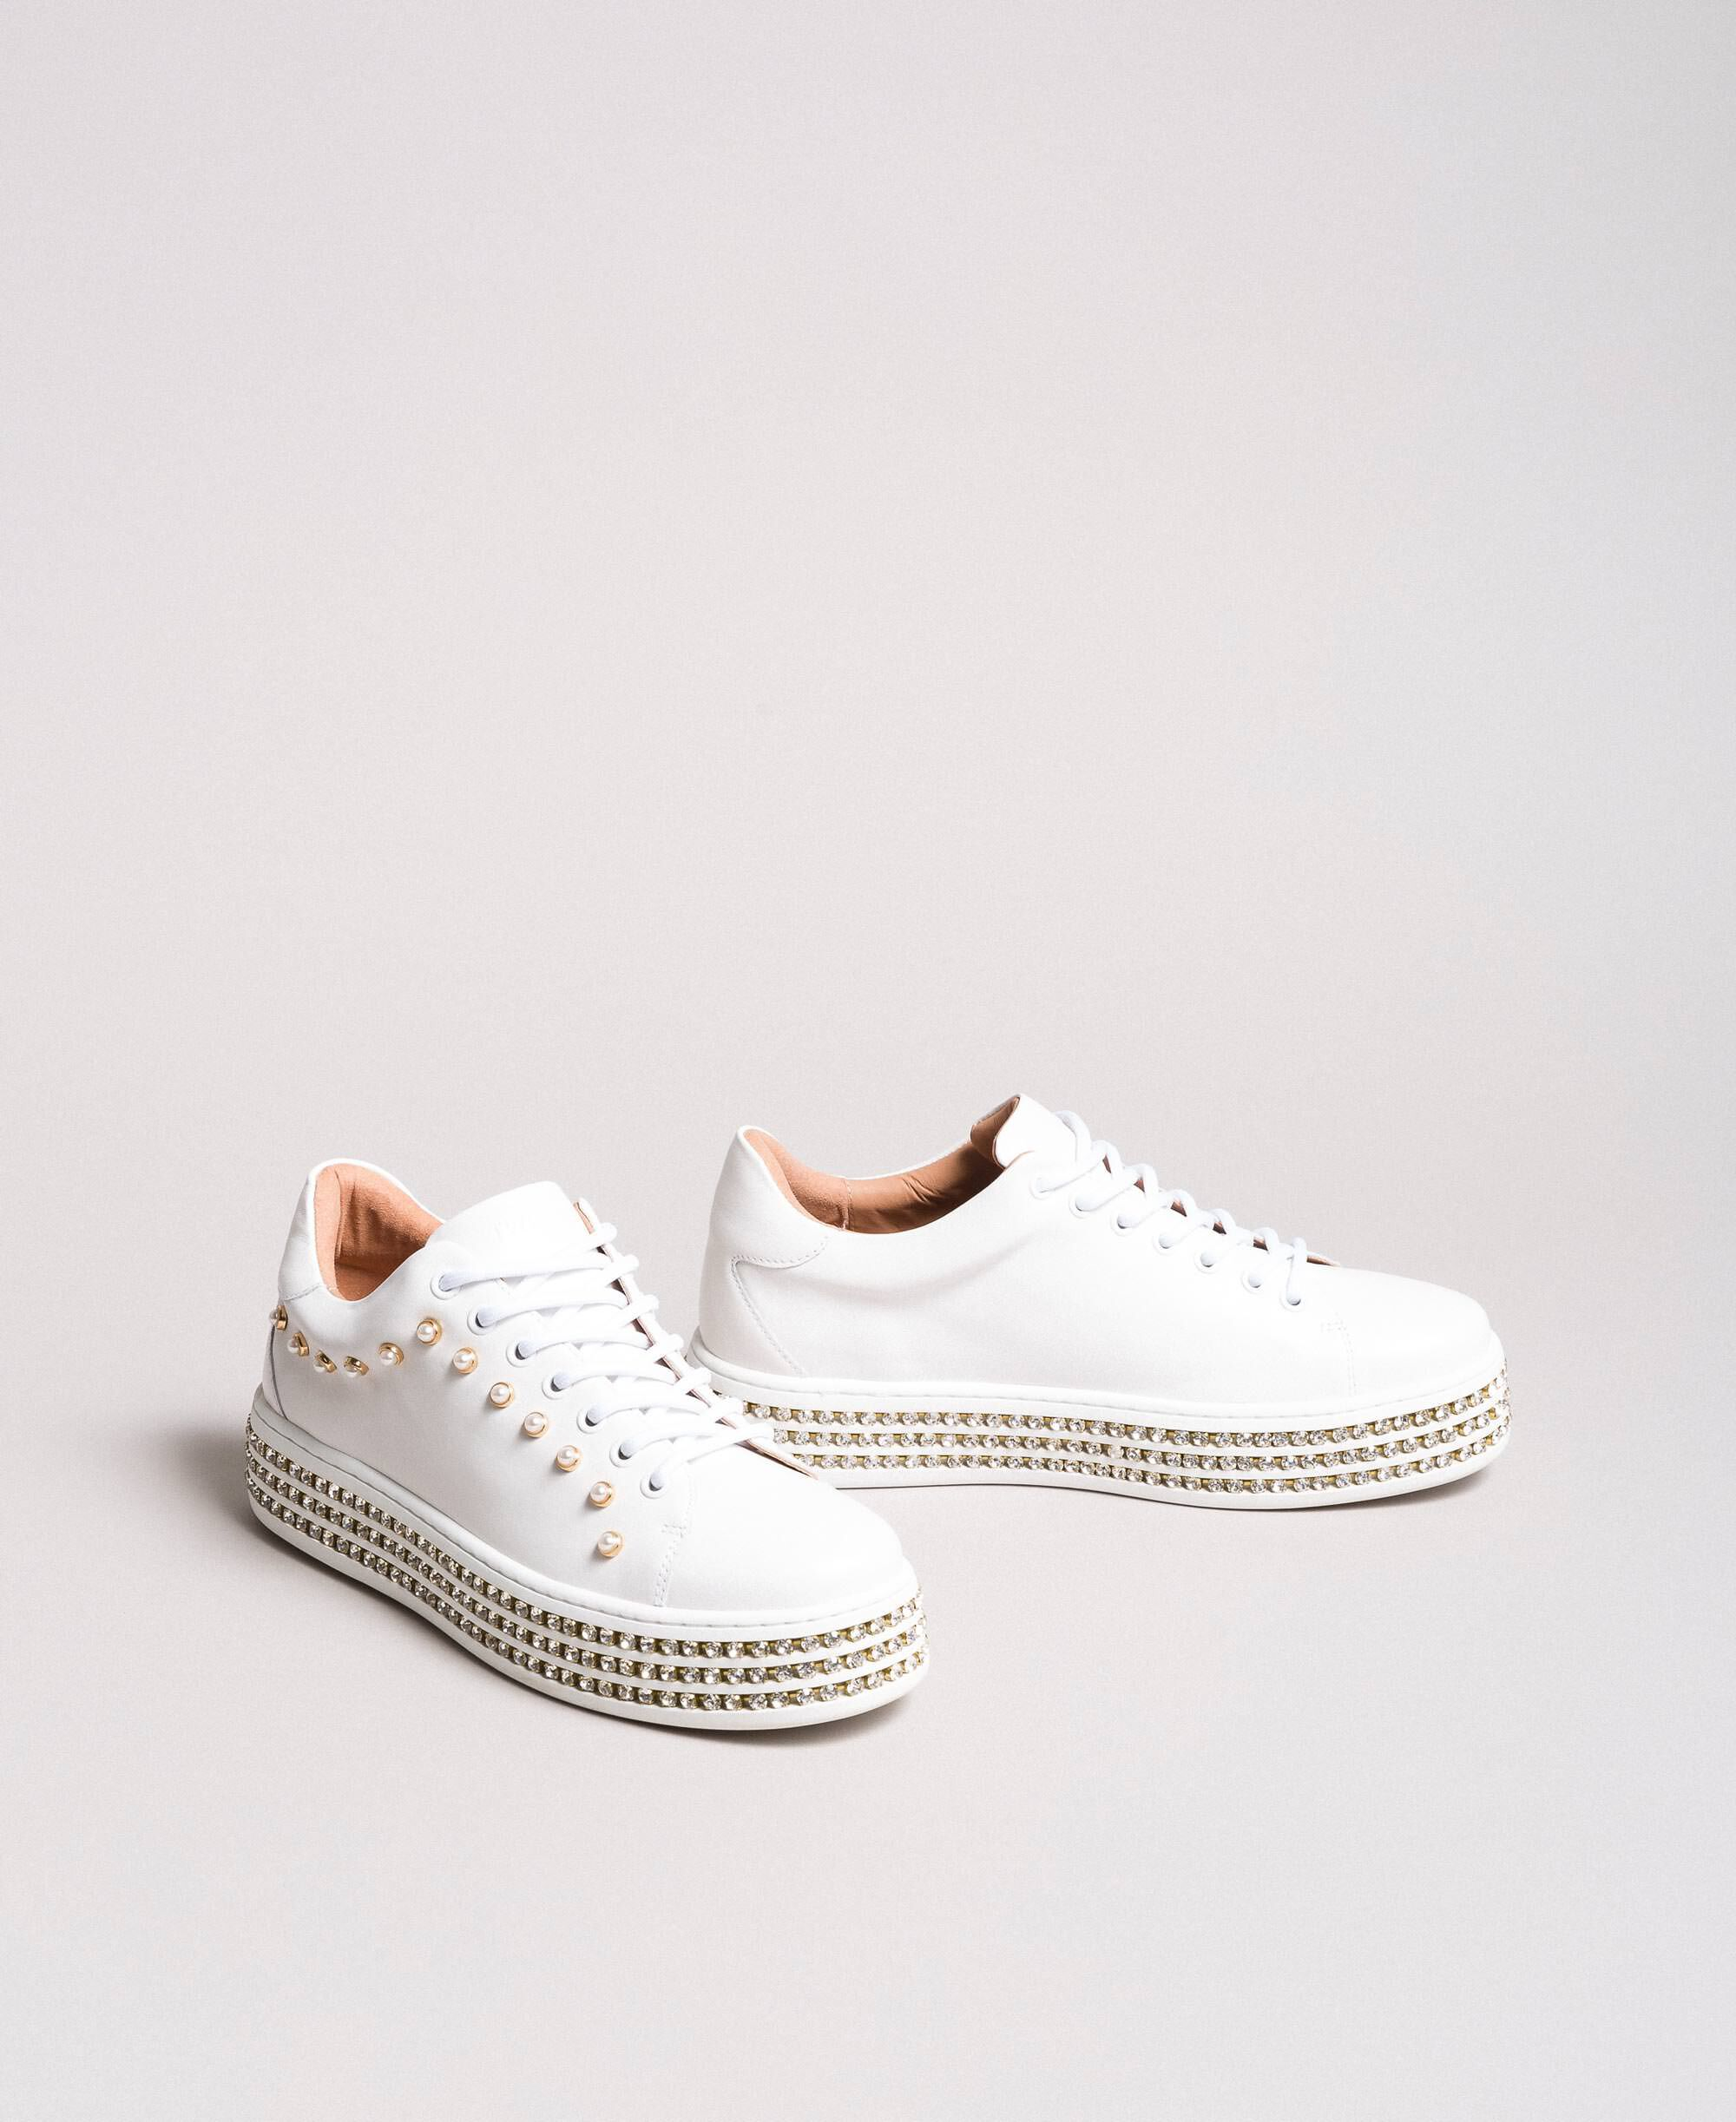 Leather sneakers with rhinestones and